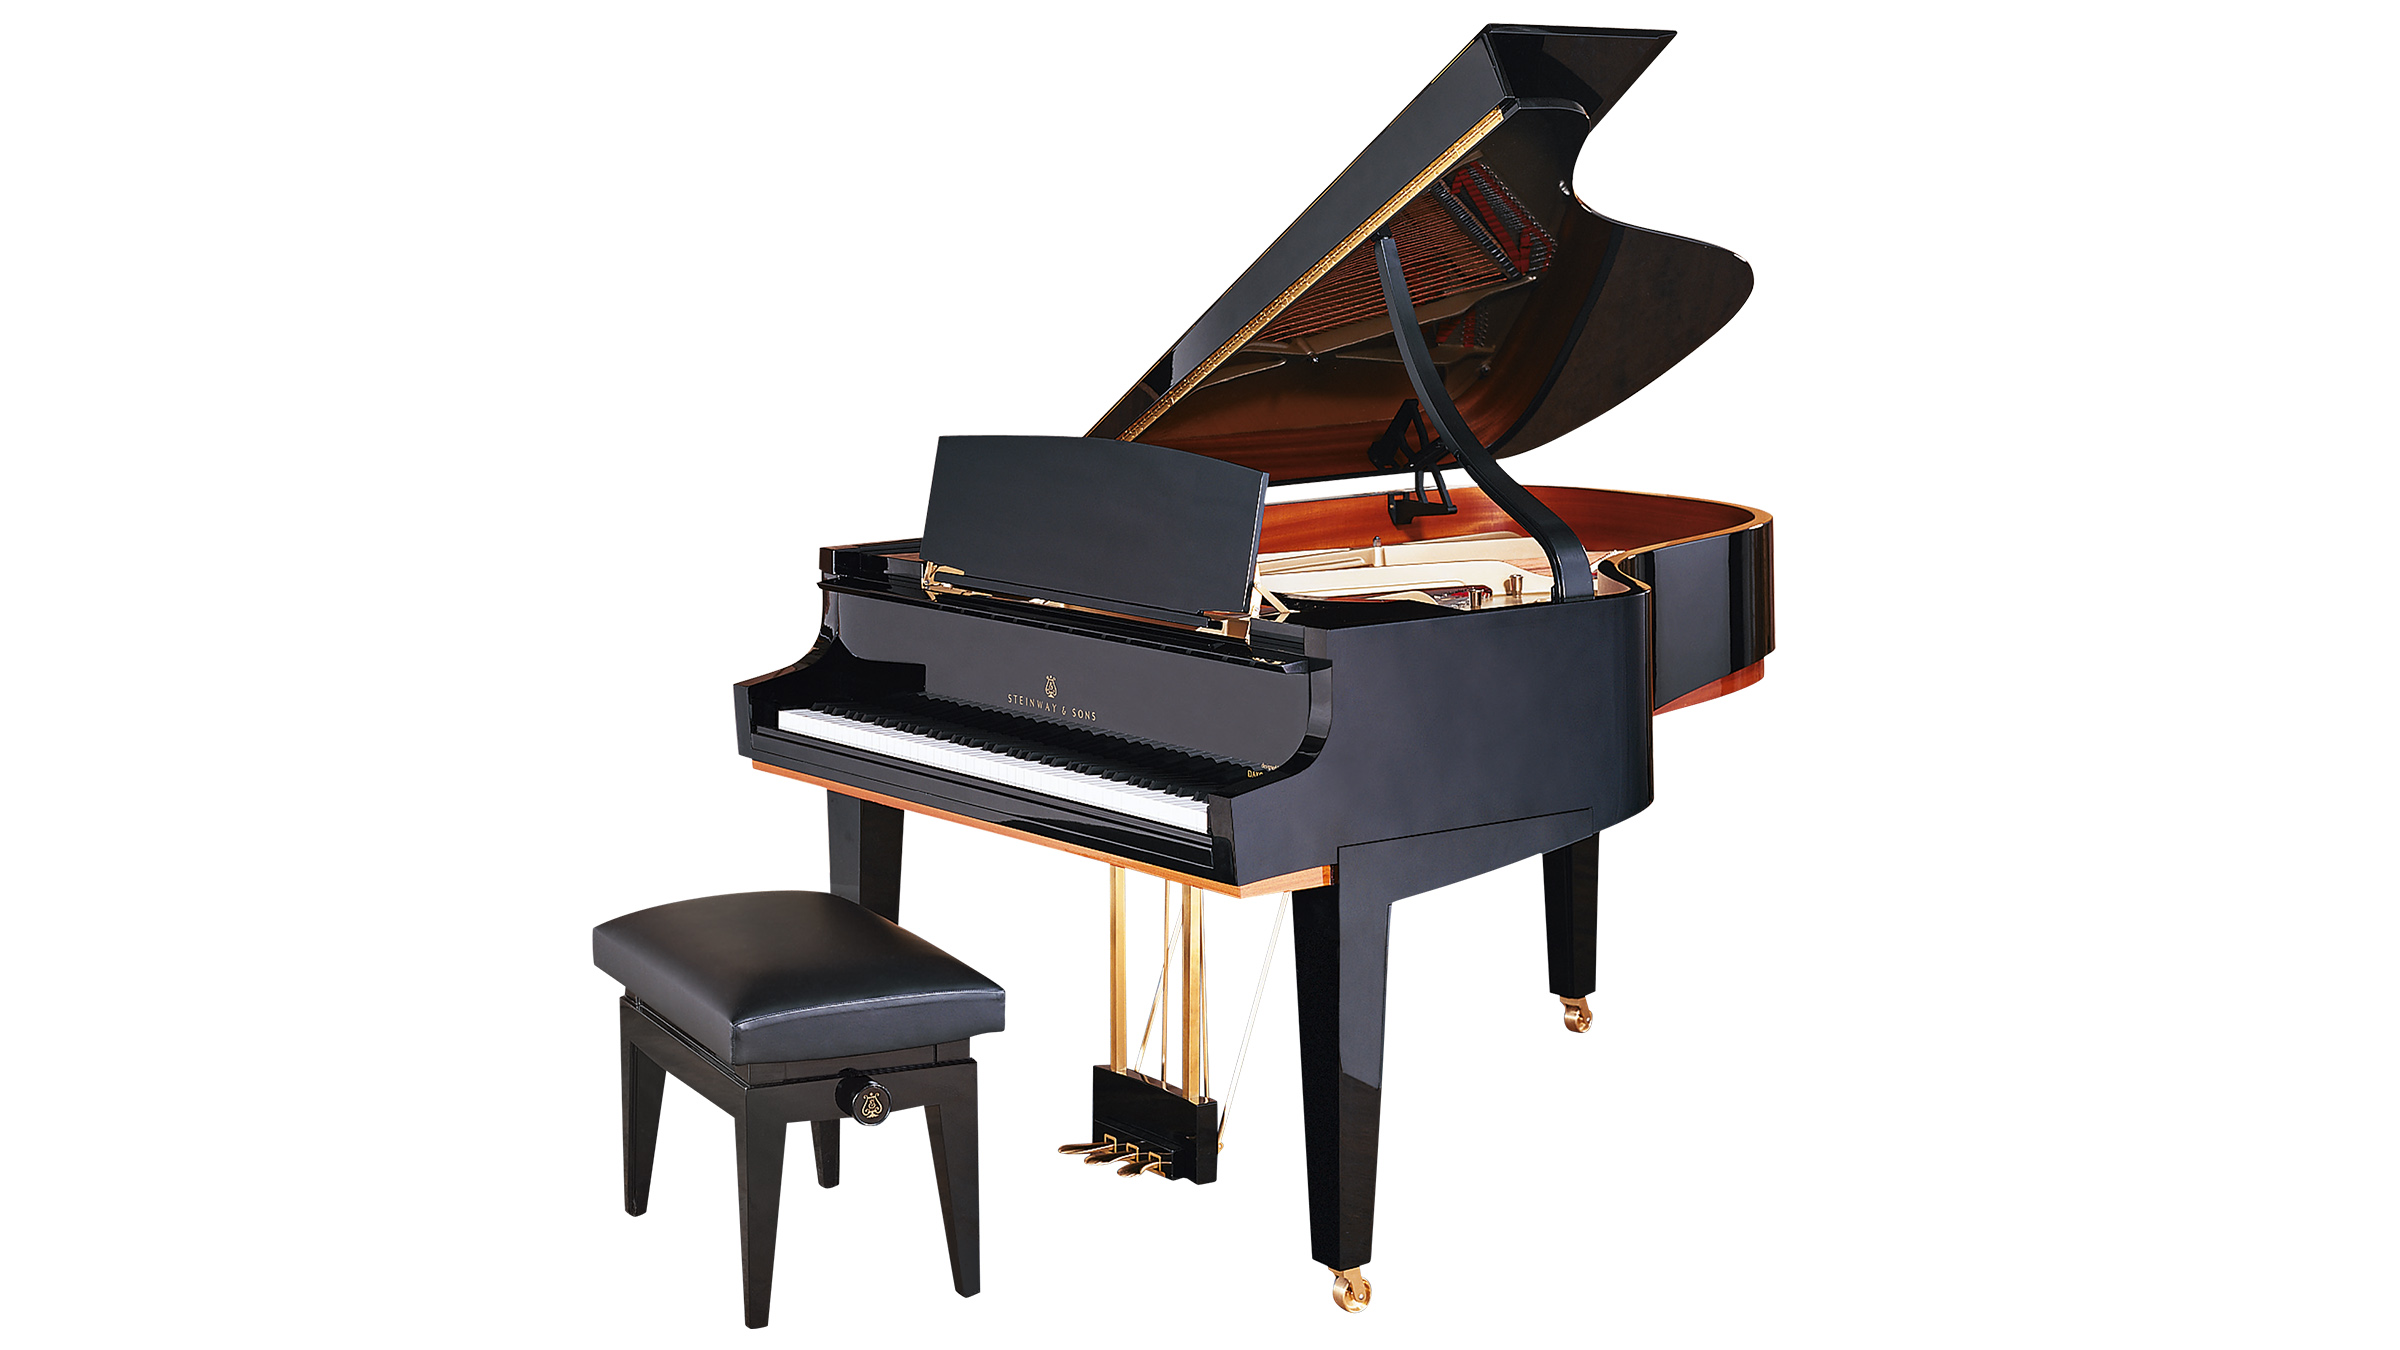 dakota_pianoforti_piatino_steinway_limited_edition